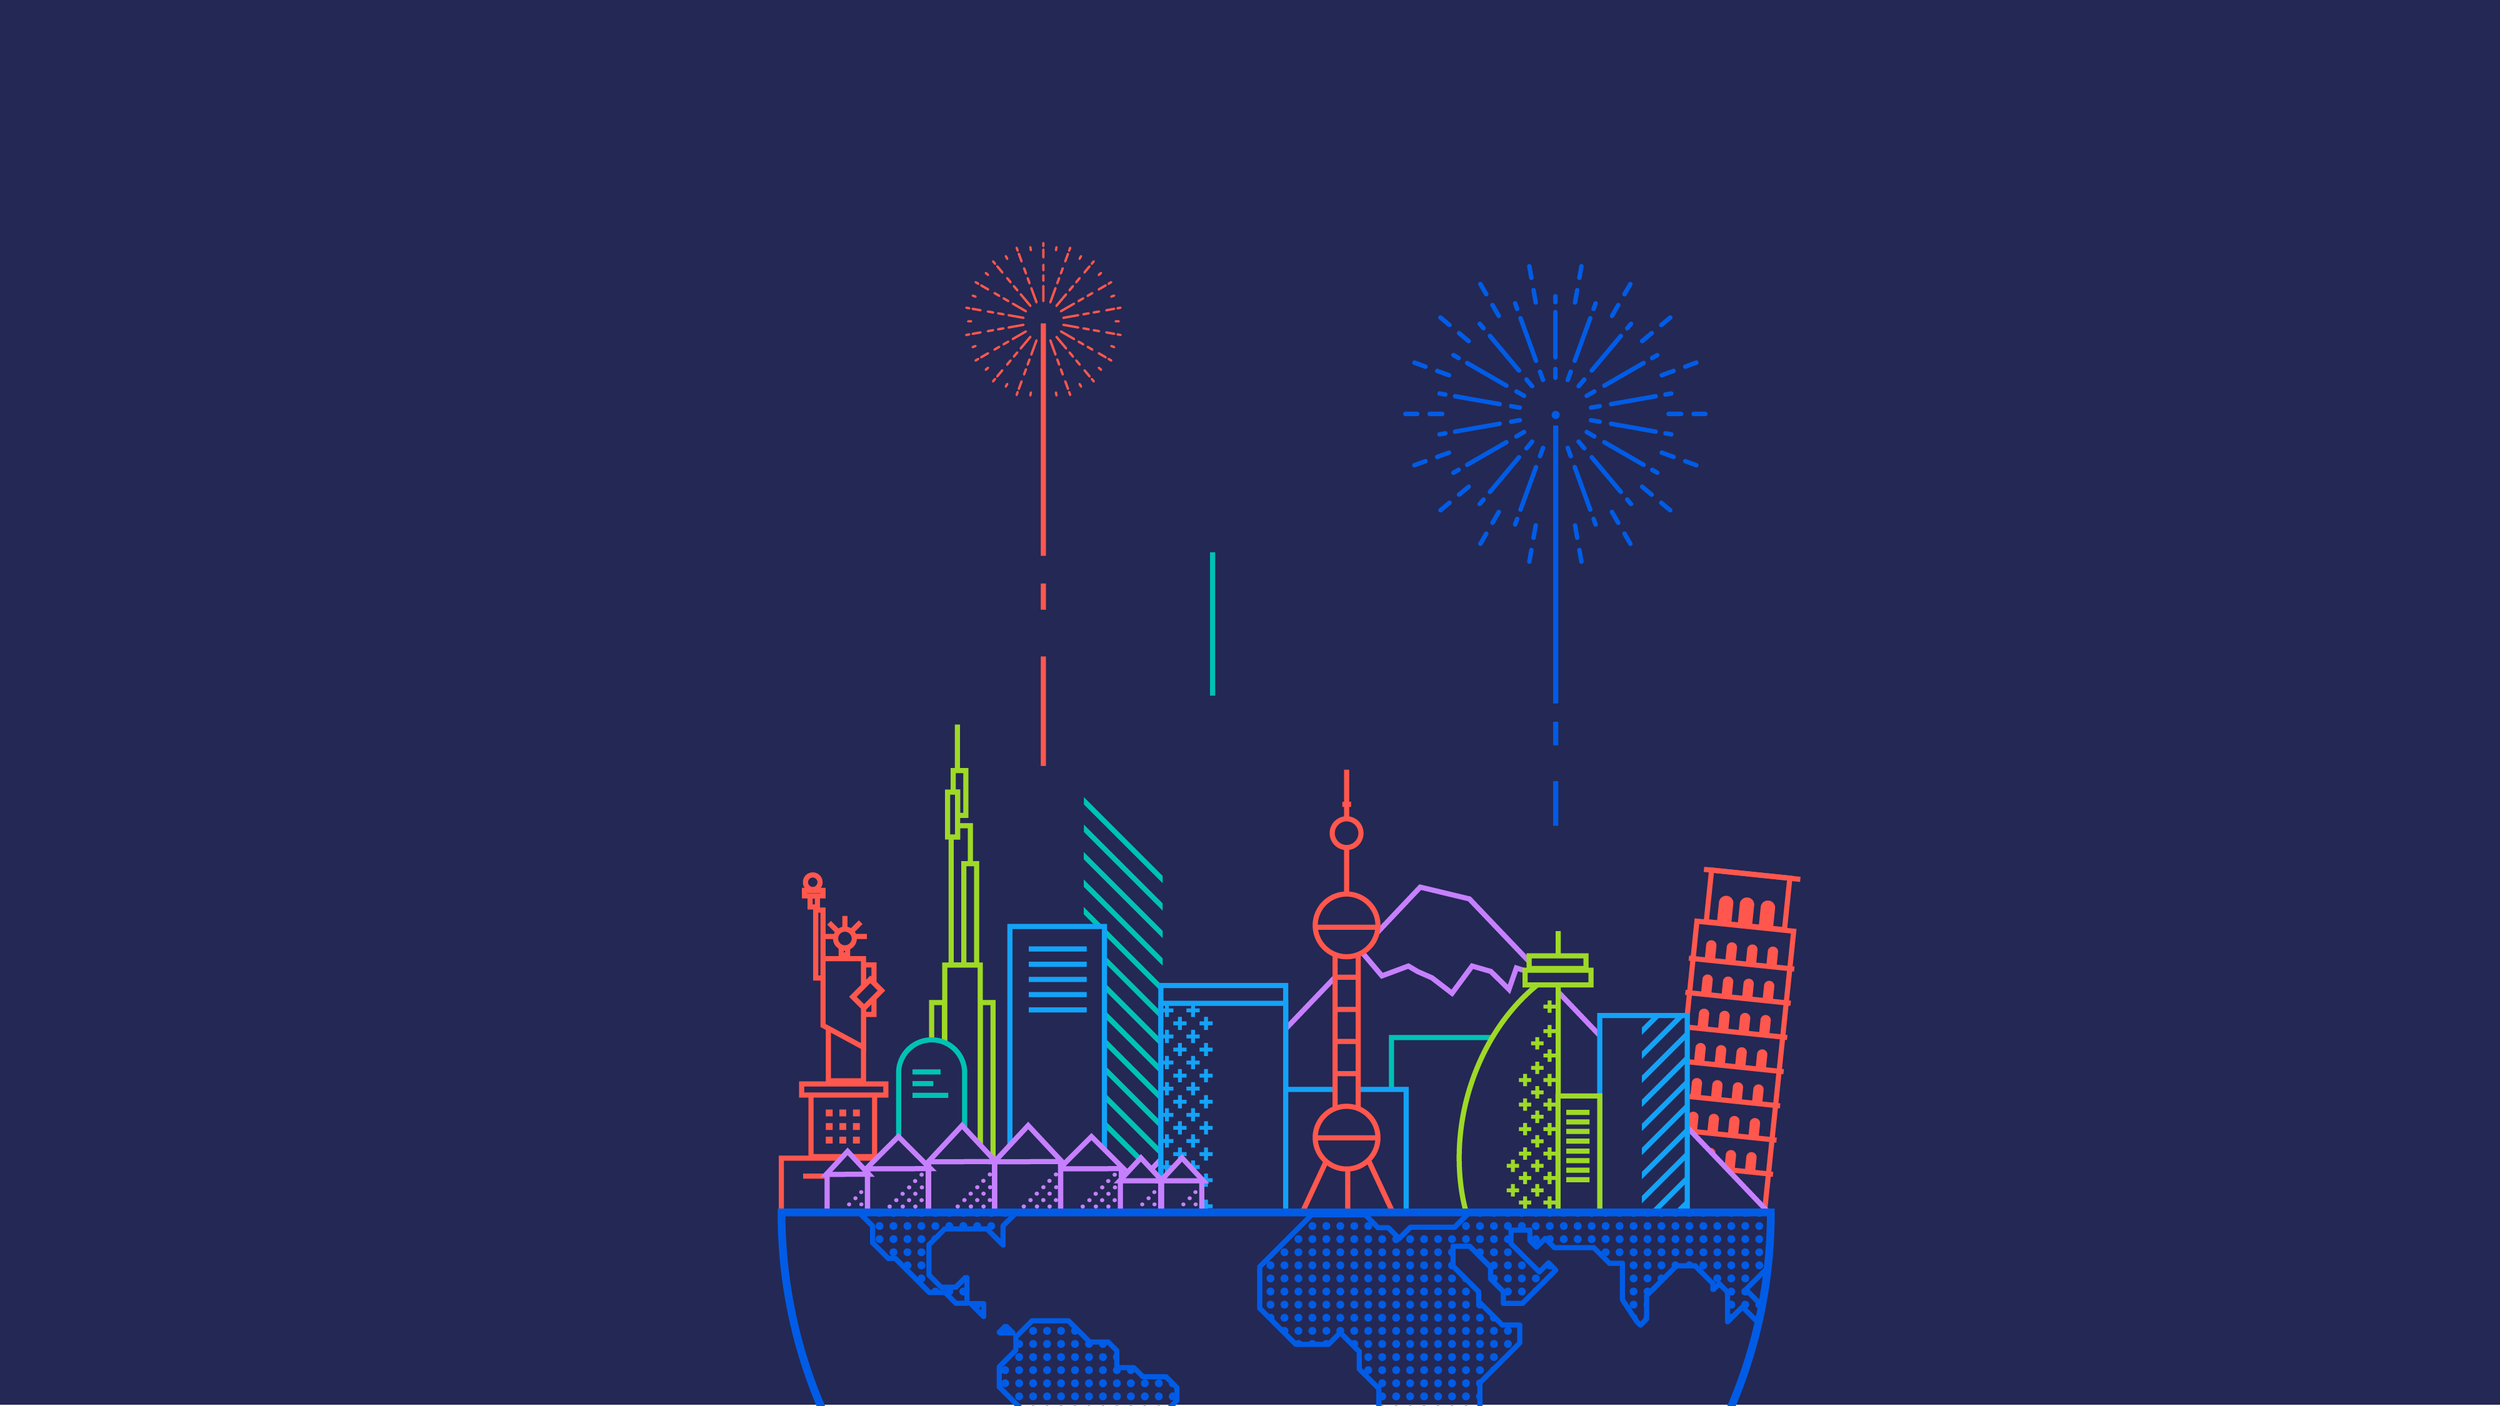 infor_holiday_card_121816_MD_All_Fireworks.png